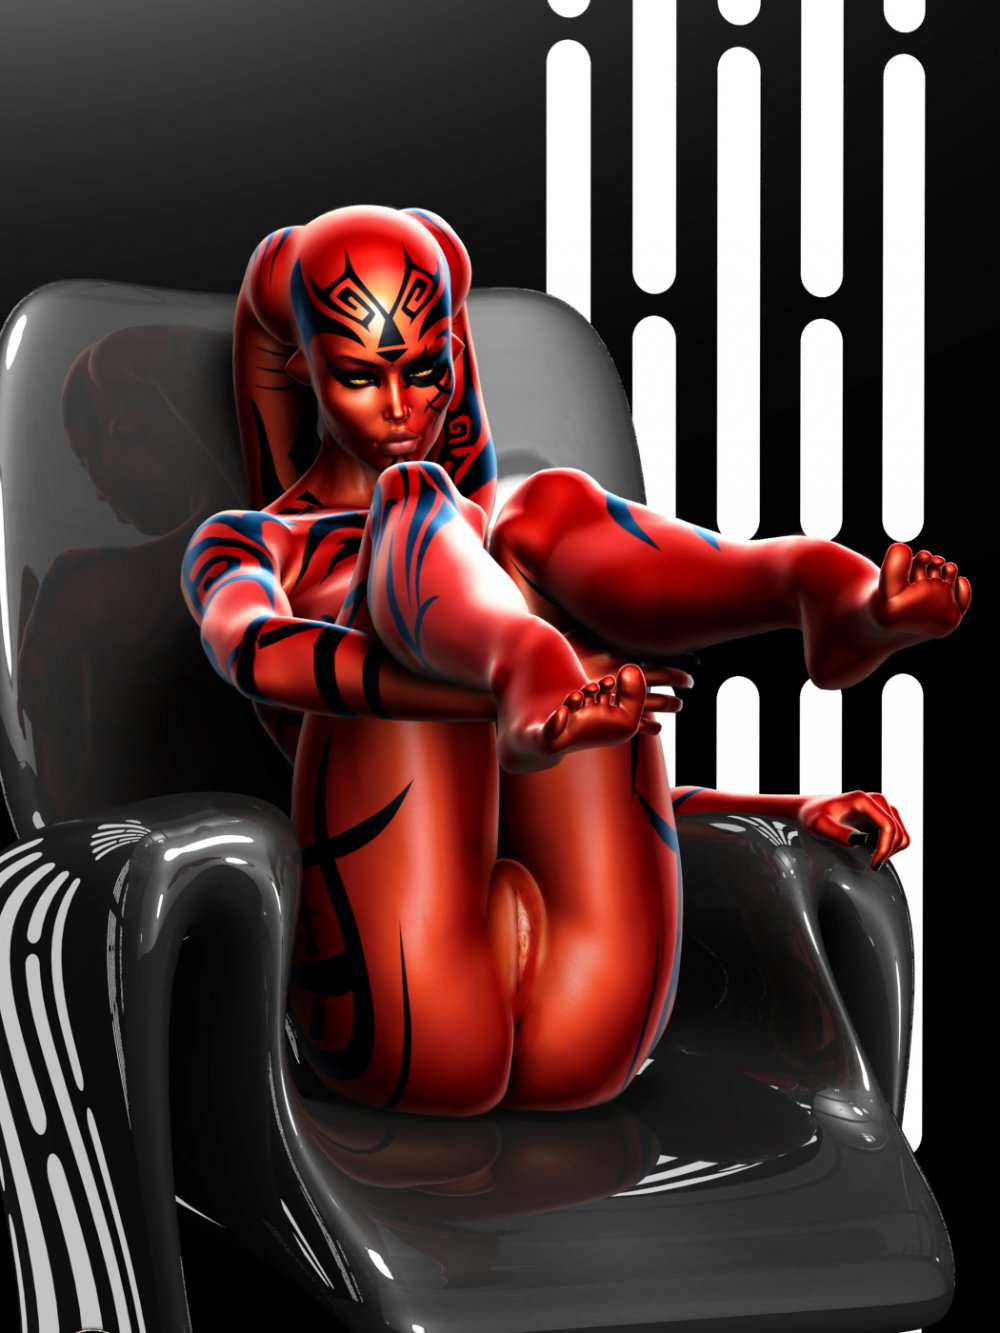 Star wars hentai wallpapers porn butts